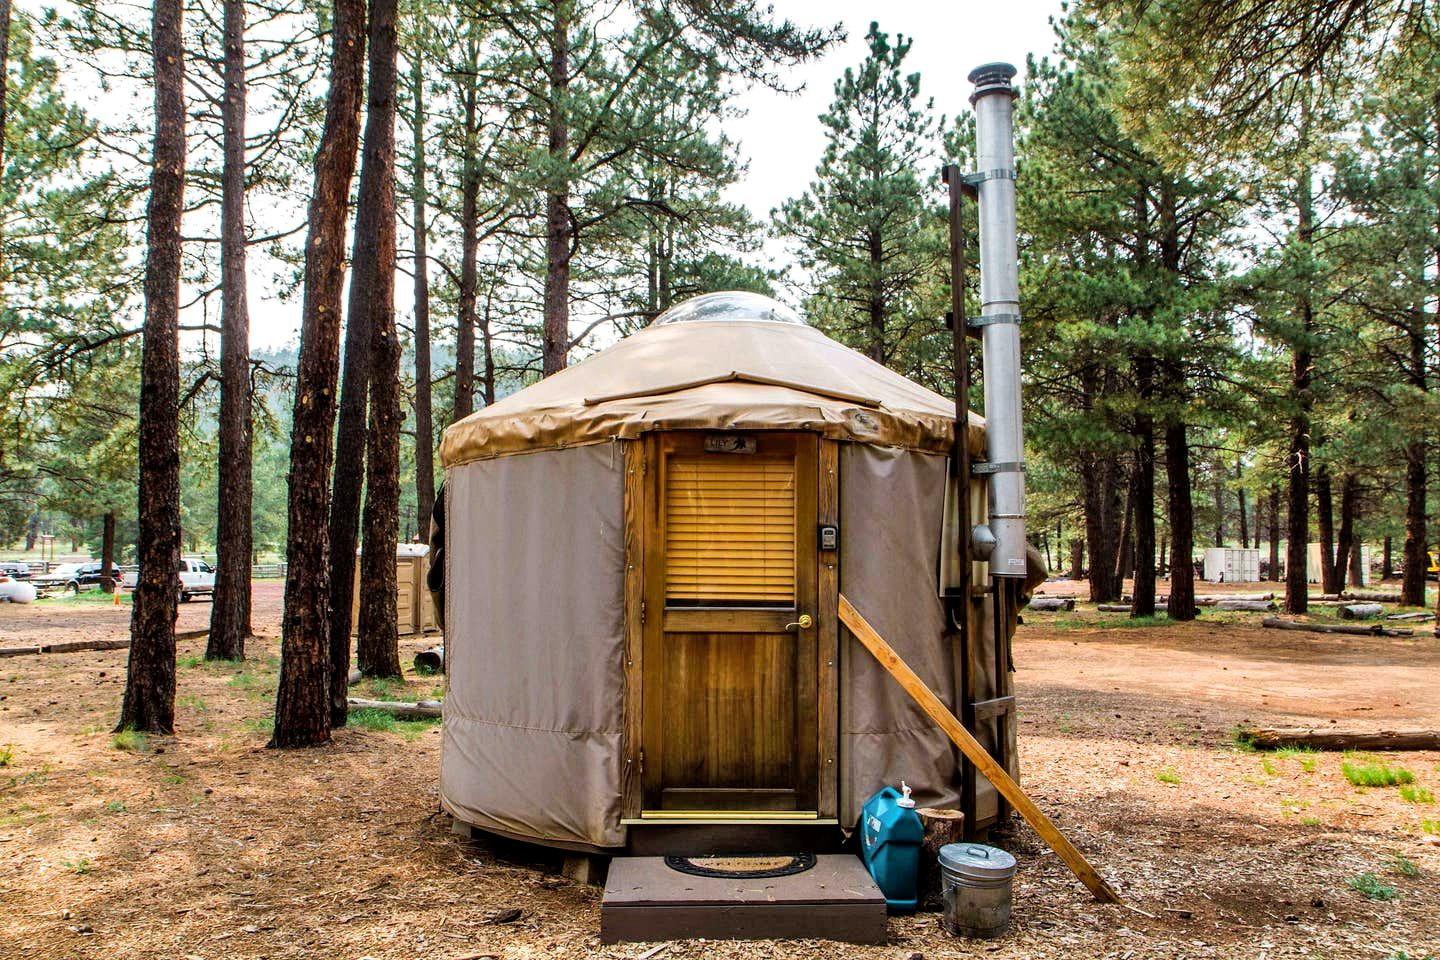 This Flagstaff yurt is great for glamping in Arizona